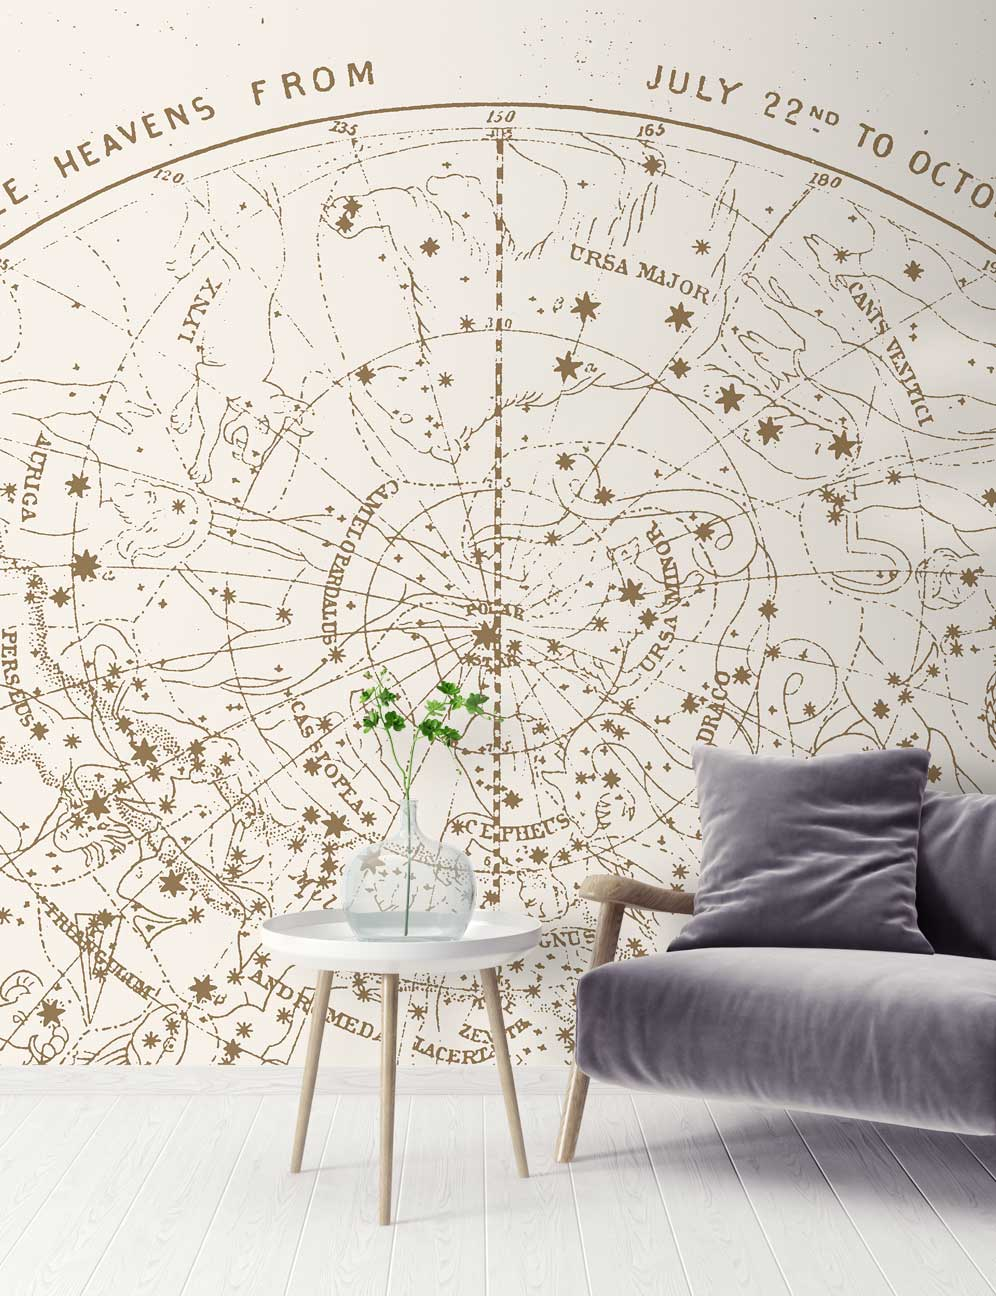 Space Wallpaper Sleep Under The Stars Every Night With These